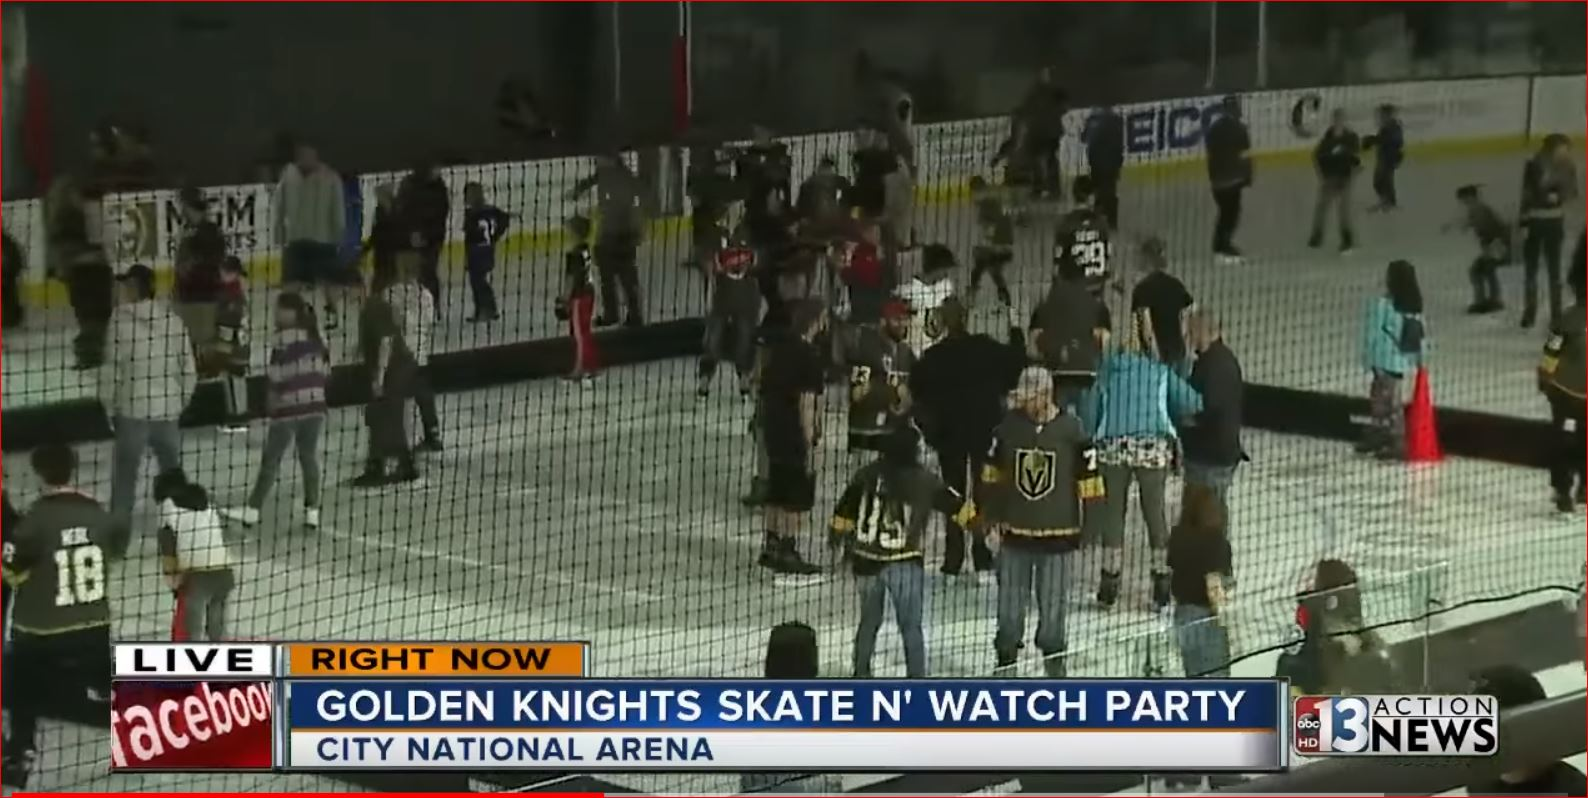 2018%20april%207%20golden%20knights%20skate%20n%20watch%20party